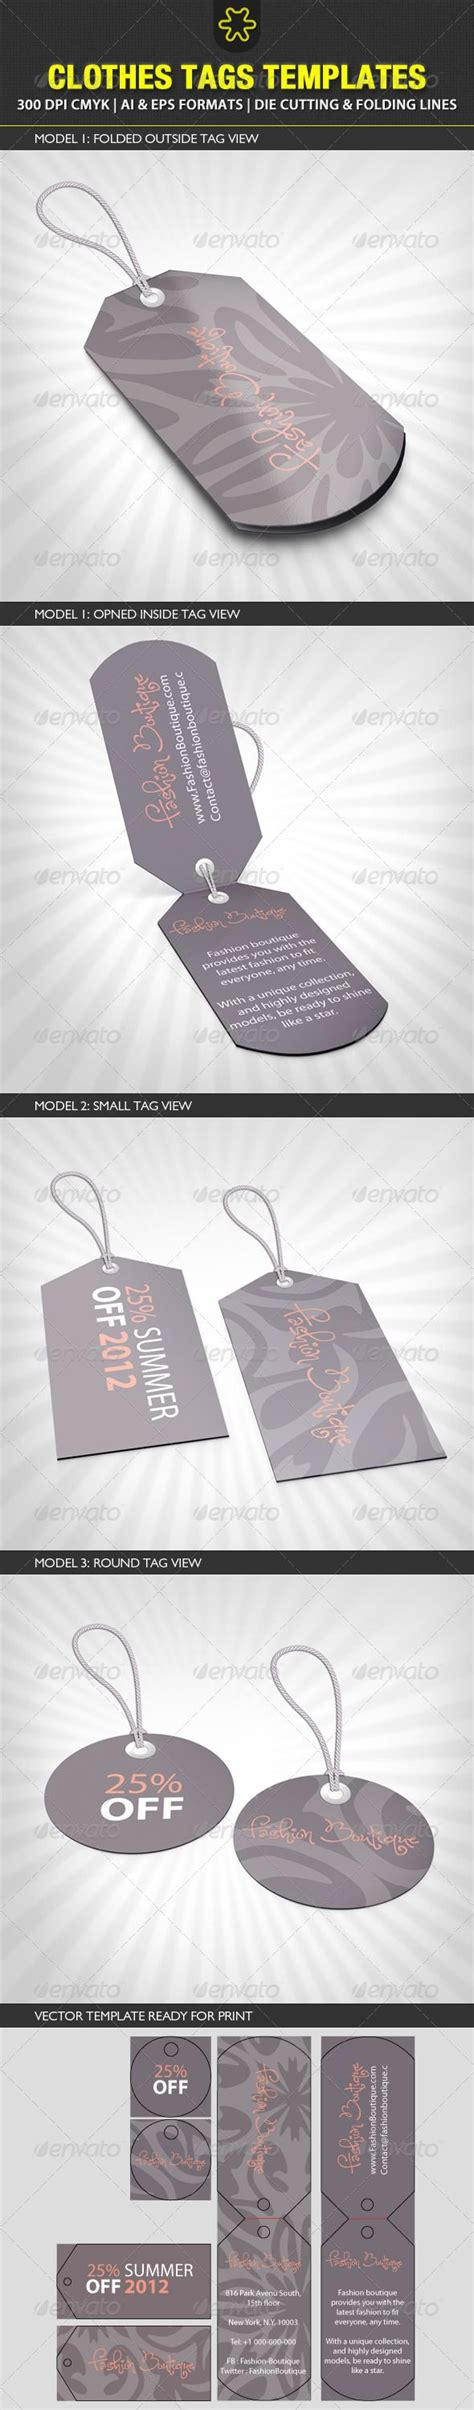 17 Best Images About Tags Labels On Pinterest Spotlight Gift Tags And Tag Templates Clothing Label Template